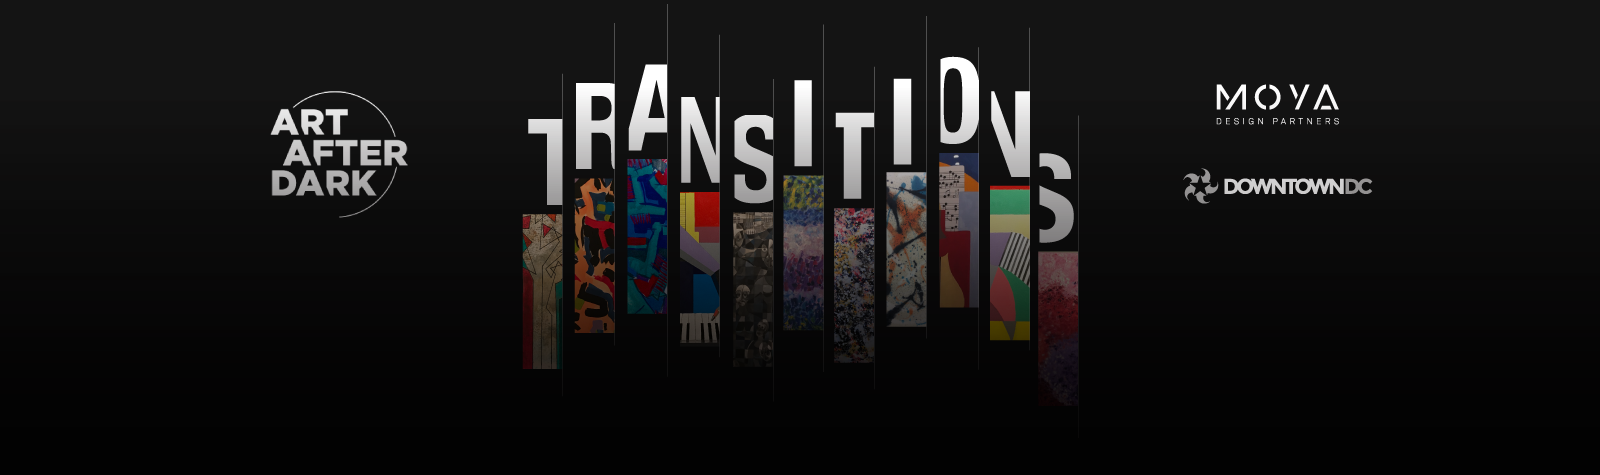 "MOYA and DowntownDC BID to Host inaugural Art After Dark: ""Transitions""  featuring Artist Hector J. Torres"